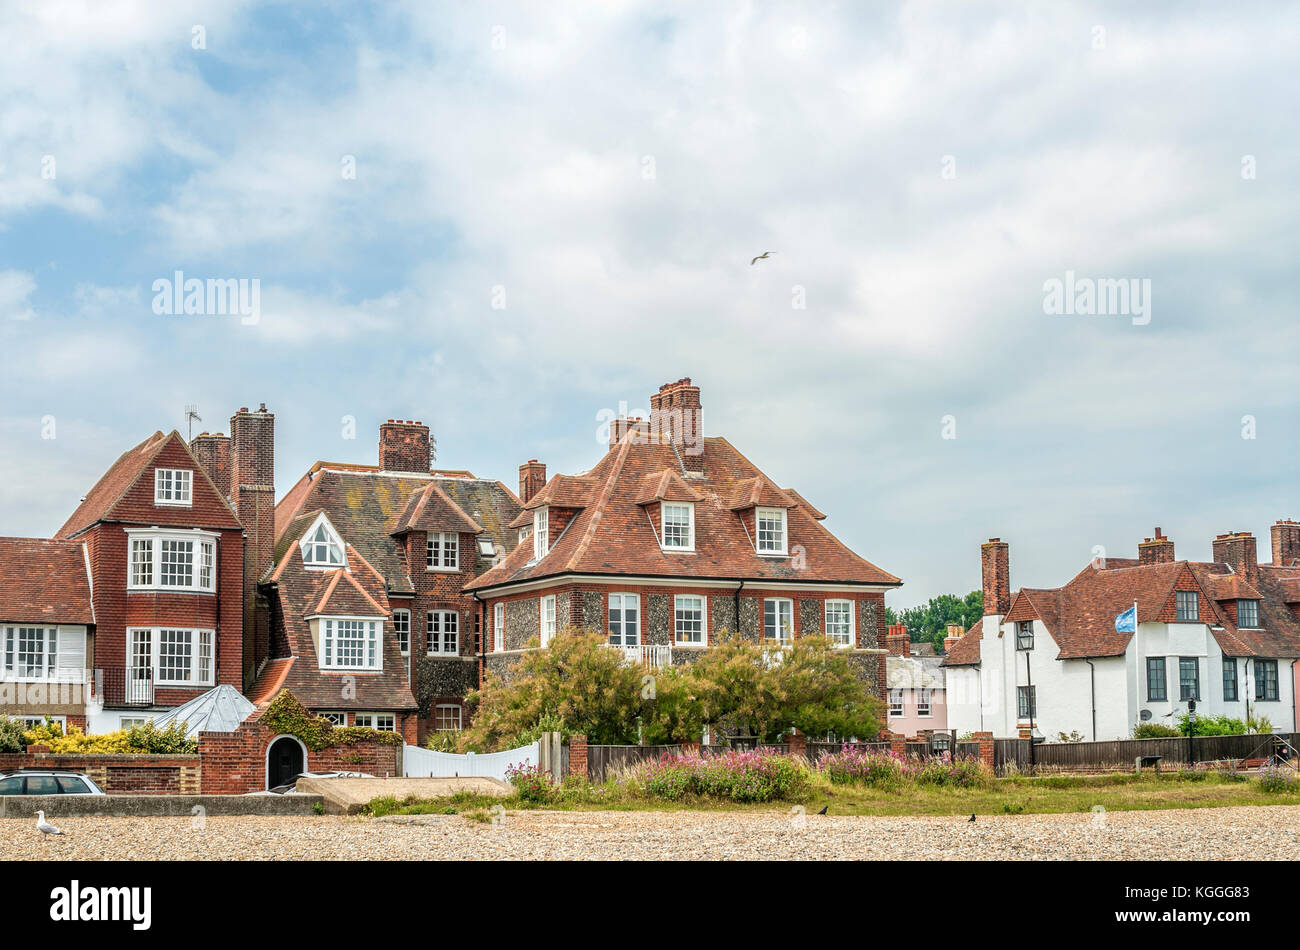 Waterfront of Aldeburgh, a coastal town in Suffolk, East Anglia, England. Located on the Alde river the town is - Stock Image